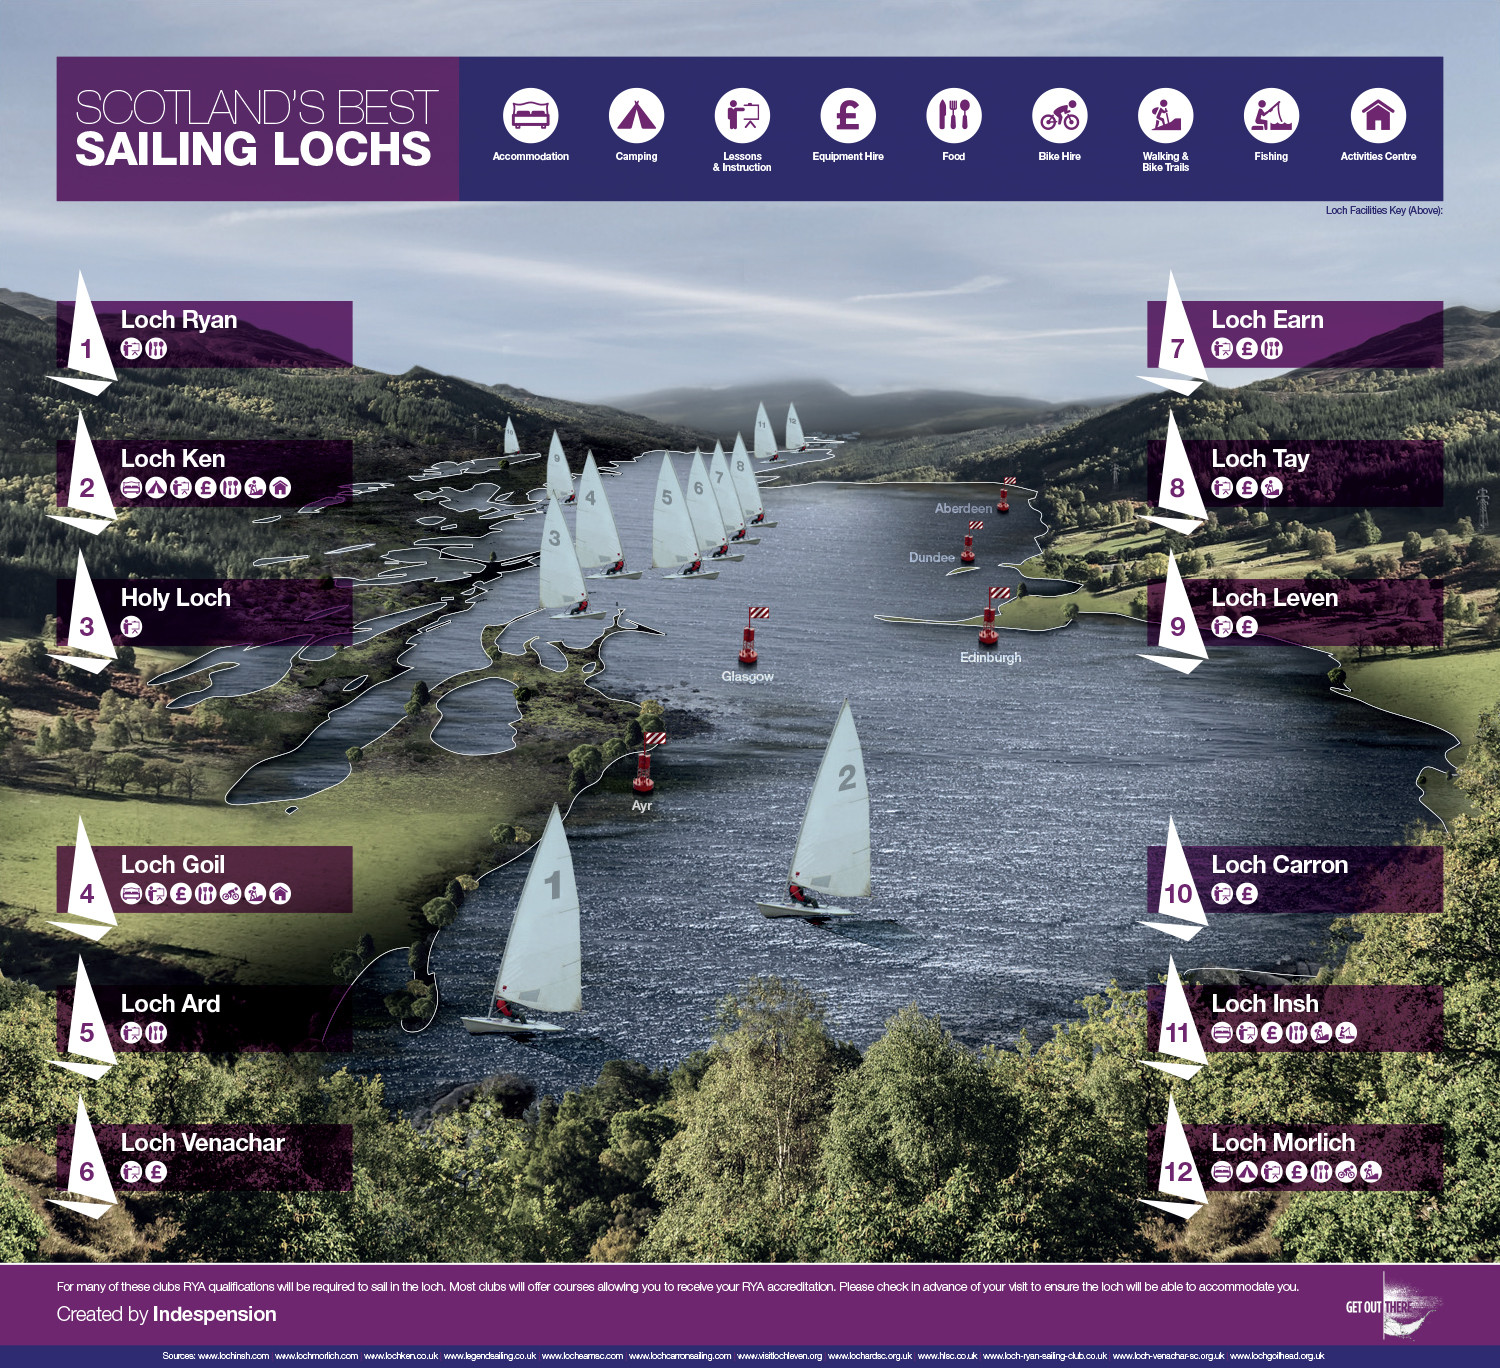 Scotland's Best Sailing Lochs Infographic